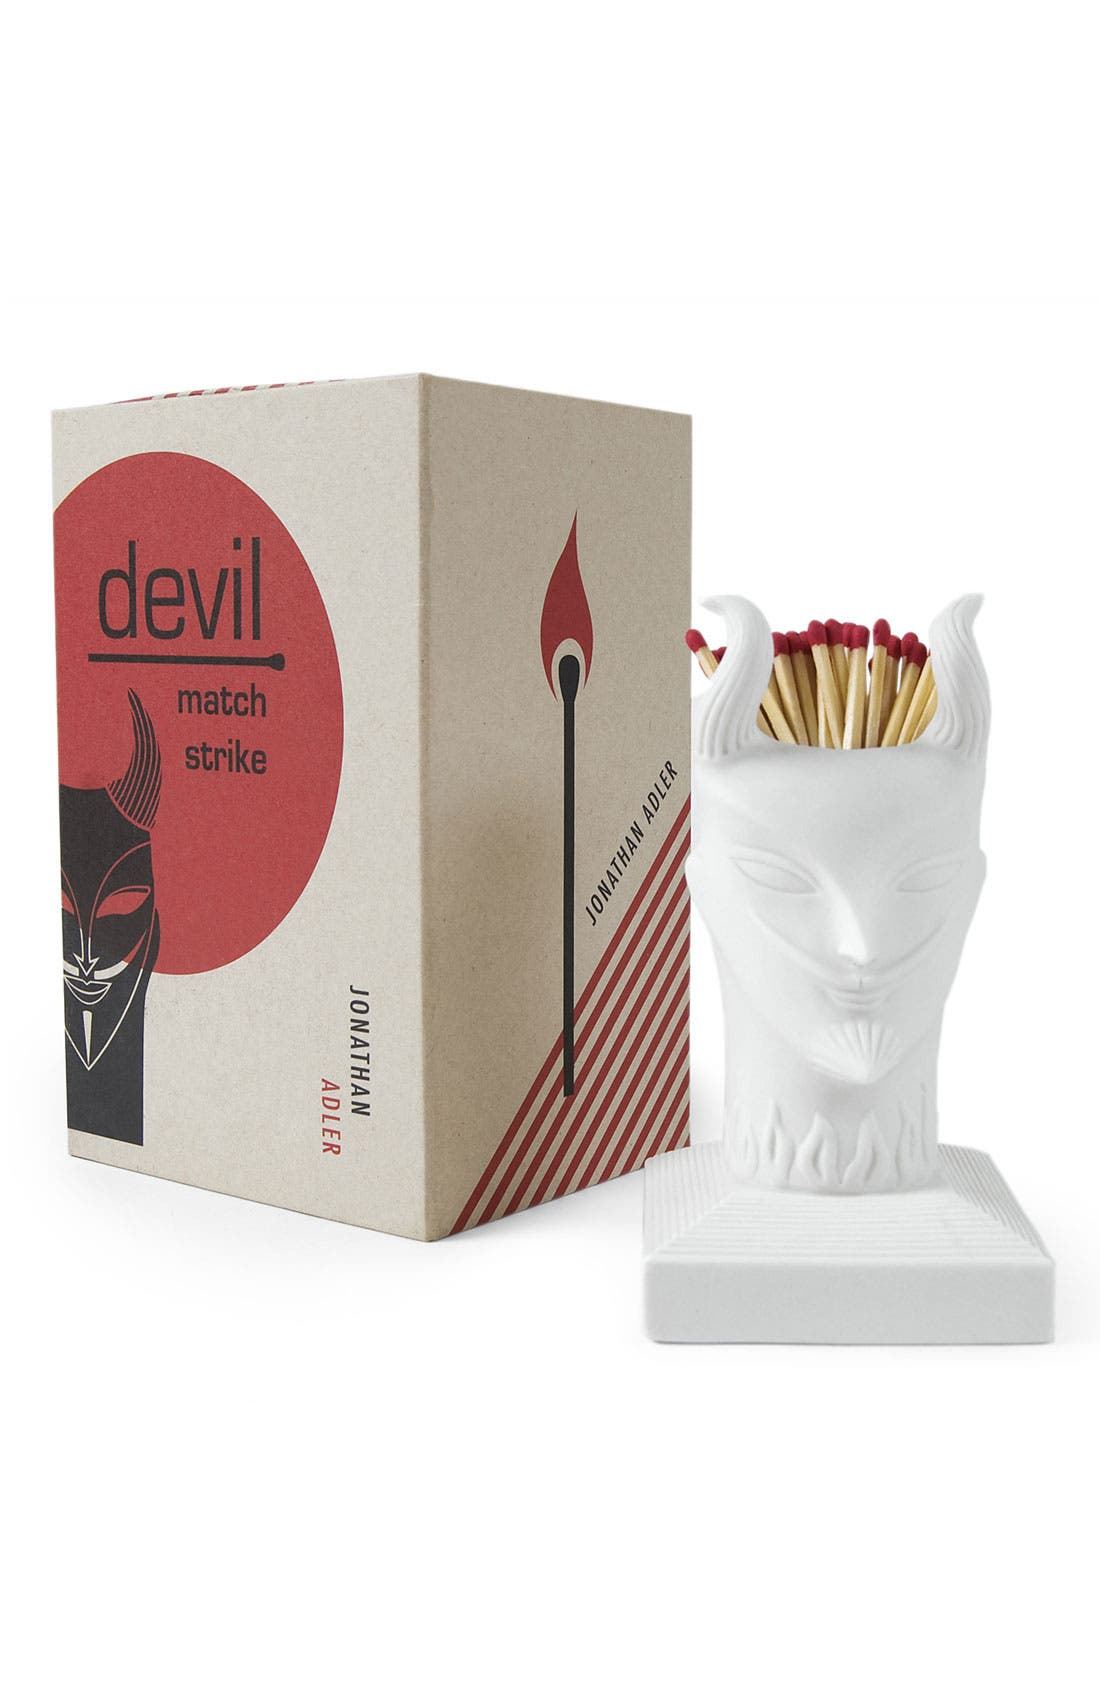 Alternate Image 1 Selected - Jonathan Adler 'Devil' Porcelain Match Strike